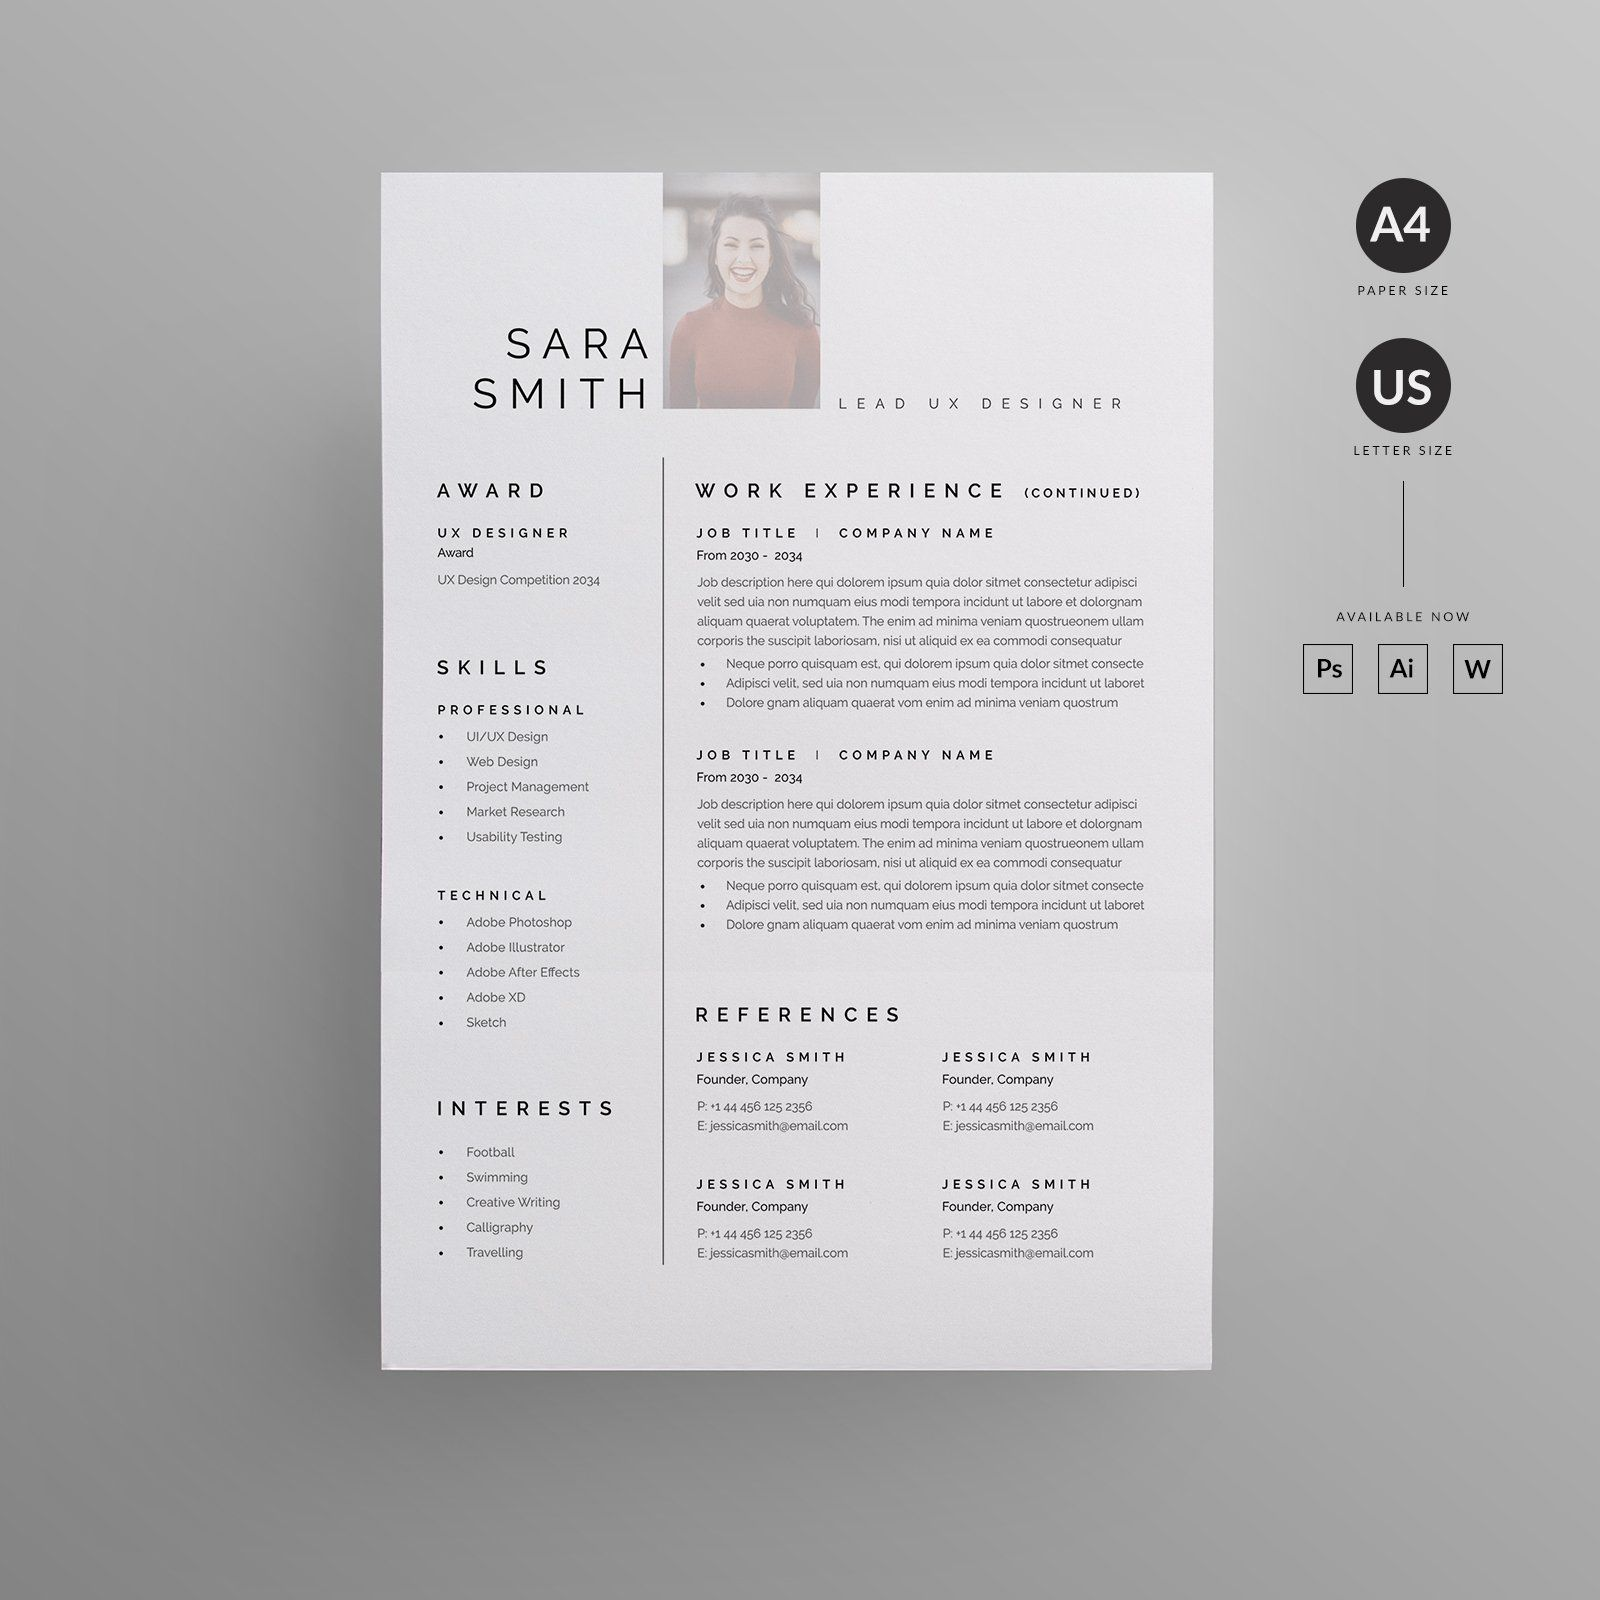 Resume/CV in 2020 Resume templates, Creative resume